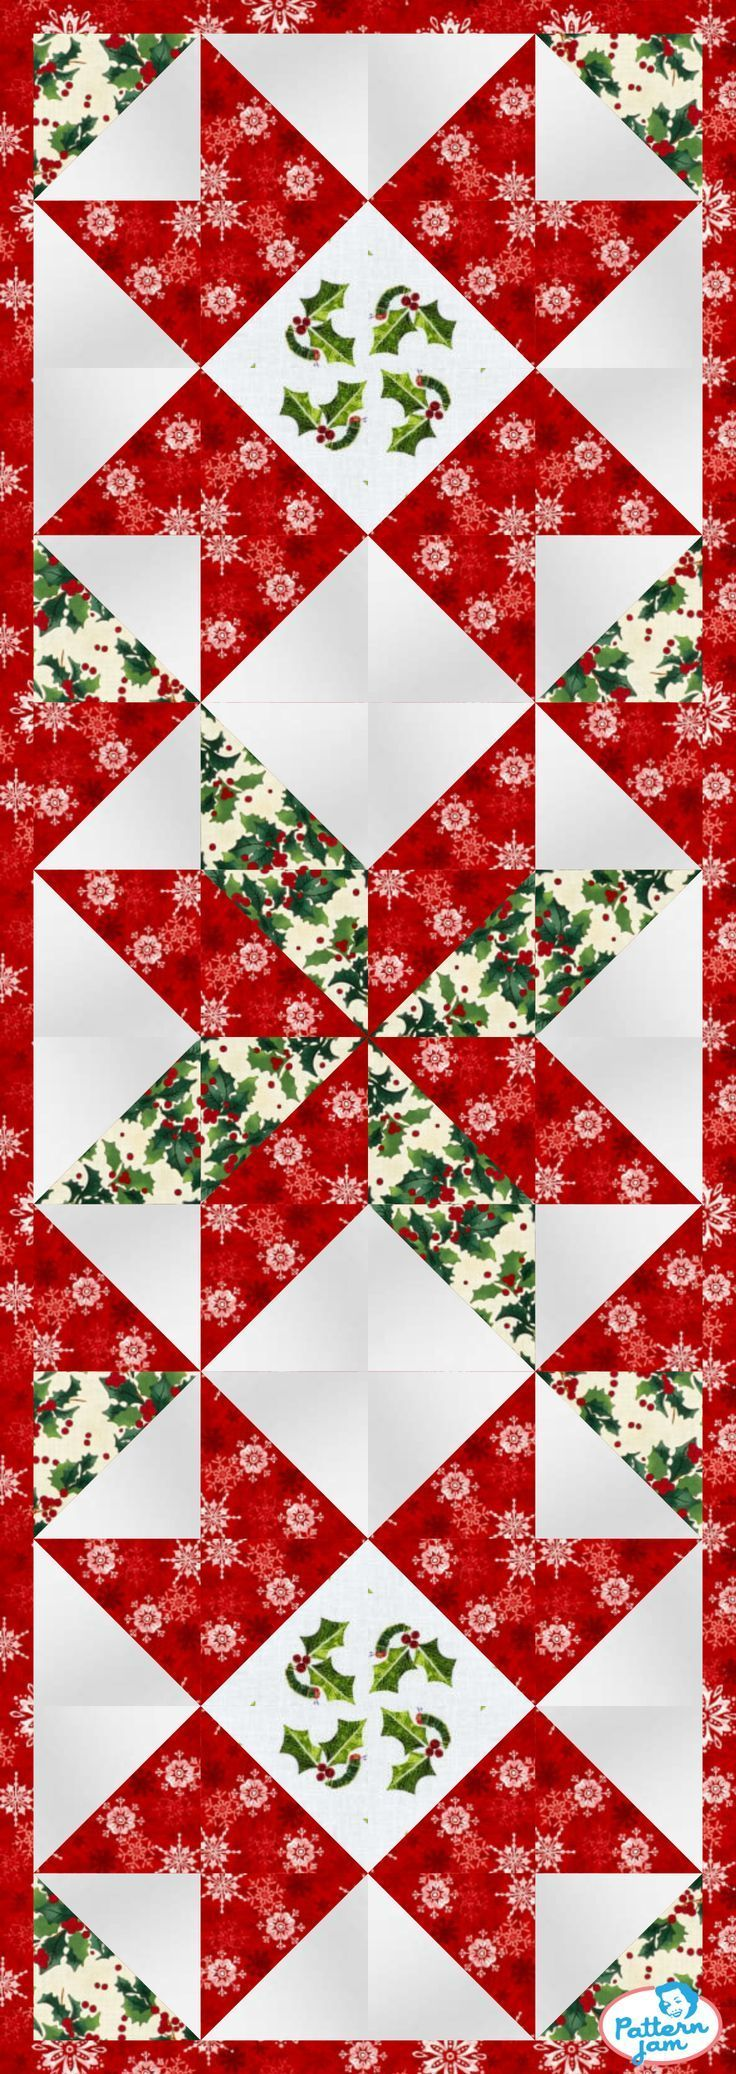 Pin By Lway On Quilts In 2021 Quilted Table Runners Christmas Christmas Table Runner Pattern Christmas Quilt Blocks